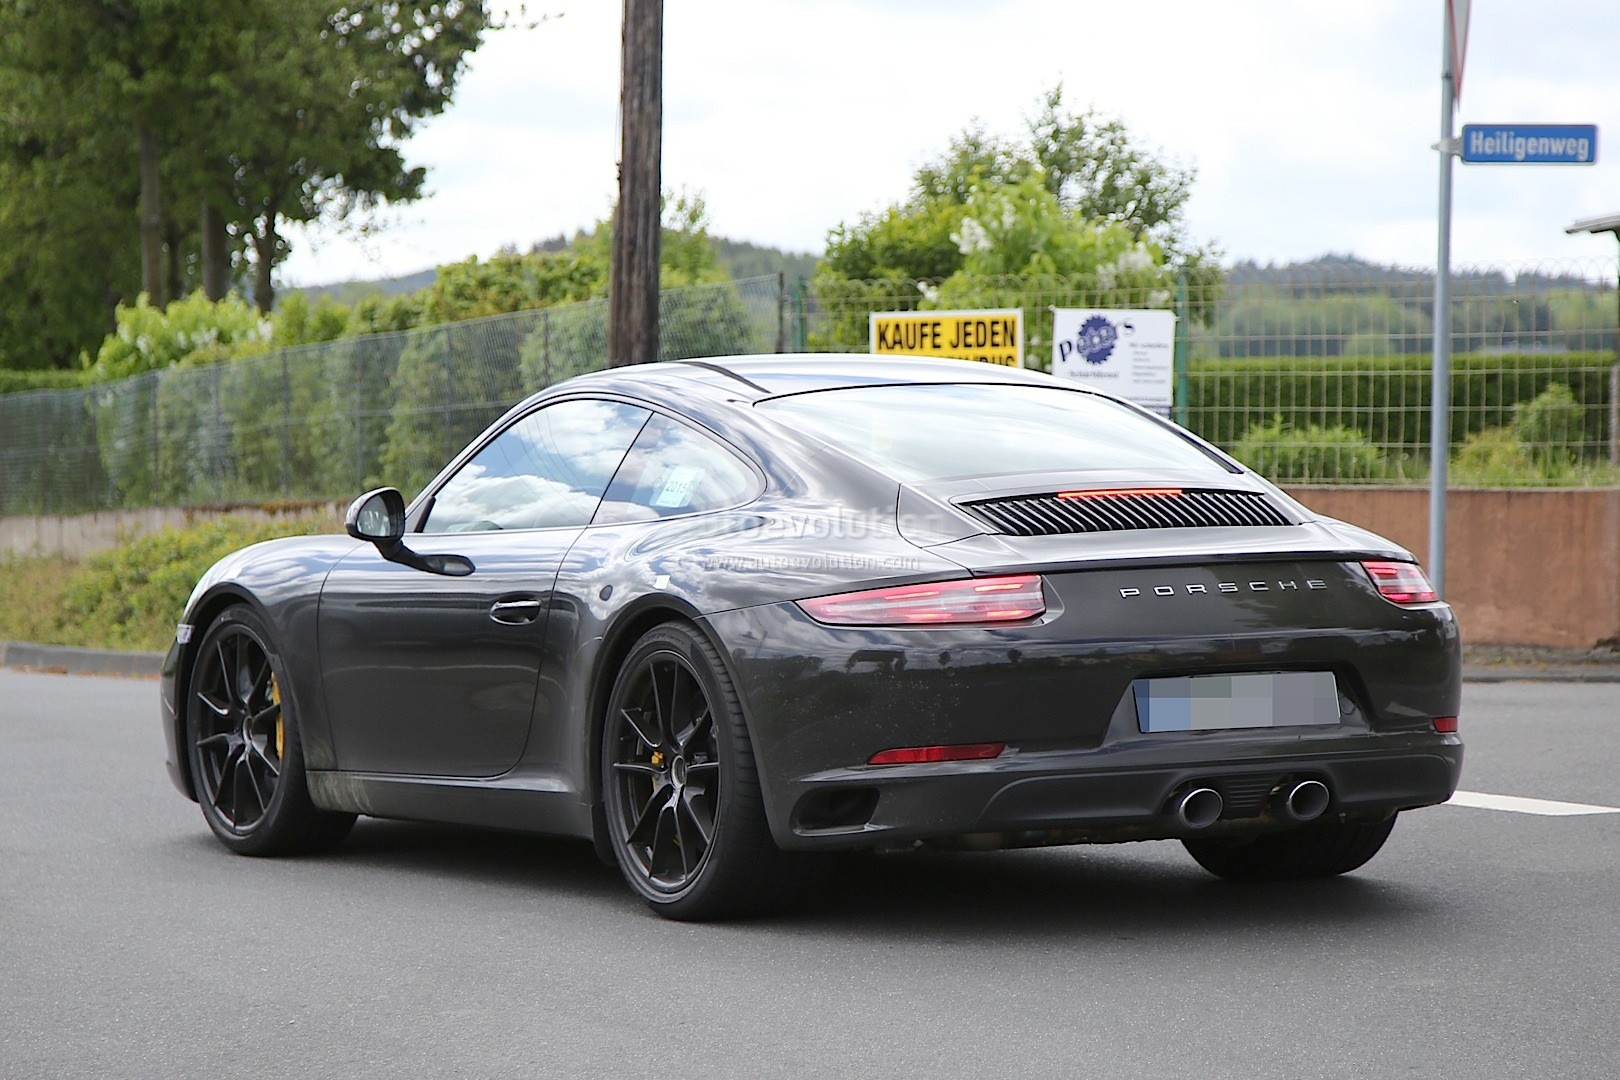 2016 porsche 911 revealed in latest spyshots facelift looks even more retro autoevolution. Black Bedroom Furniture Sets. Home Design Ideas